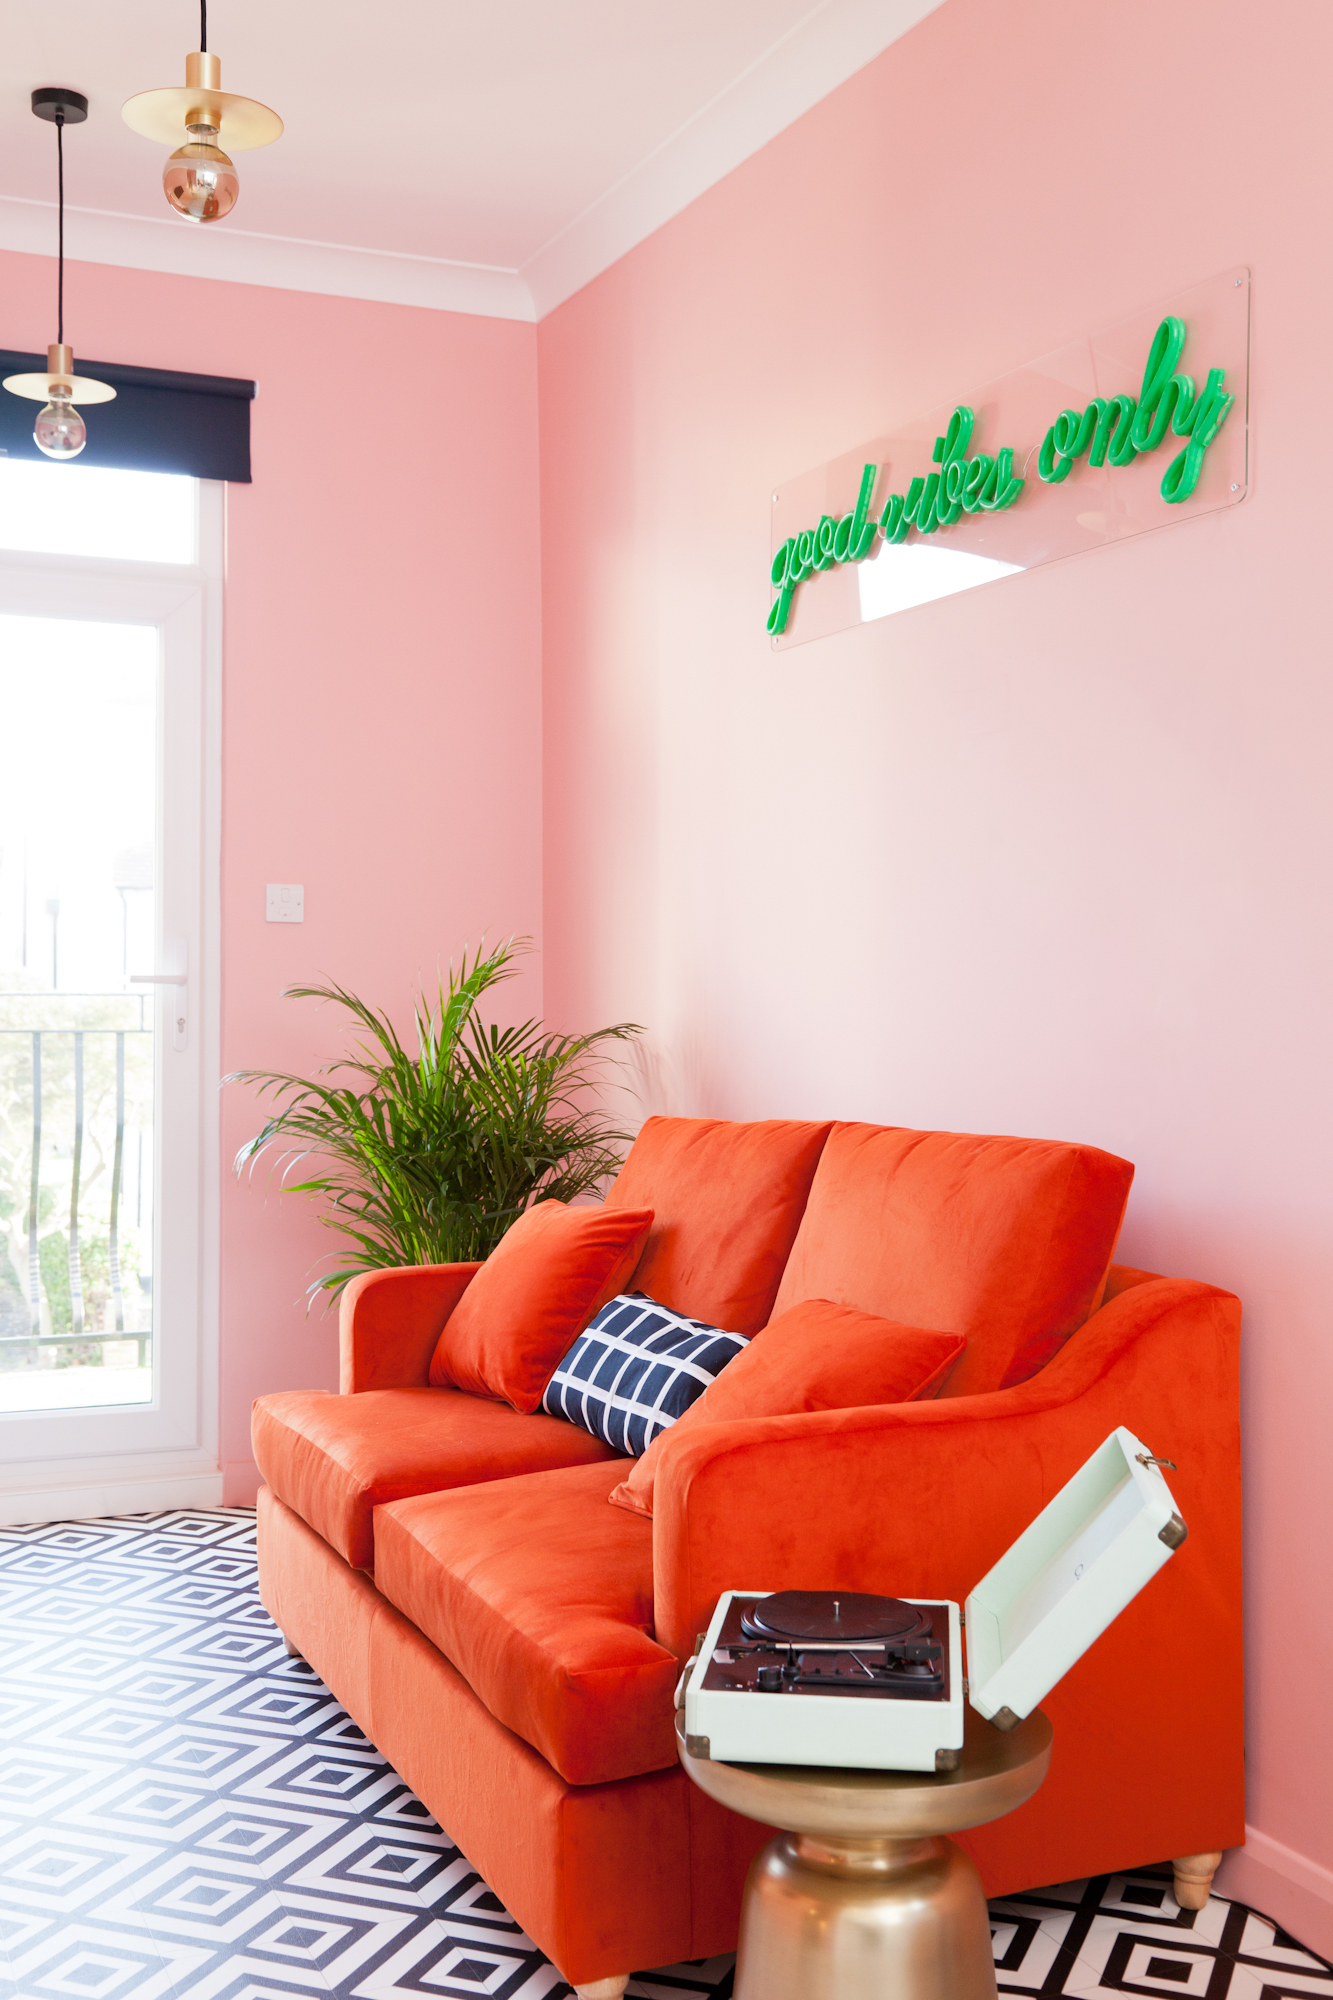 Here are the reveal pictures of my latest interior design project, an eclectic decor with pink walls, brass accents a red velvet sofa, neon signs and dark walls in the bedroom.